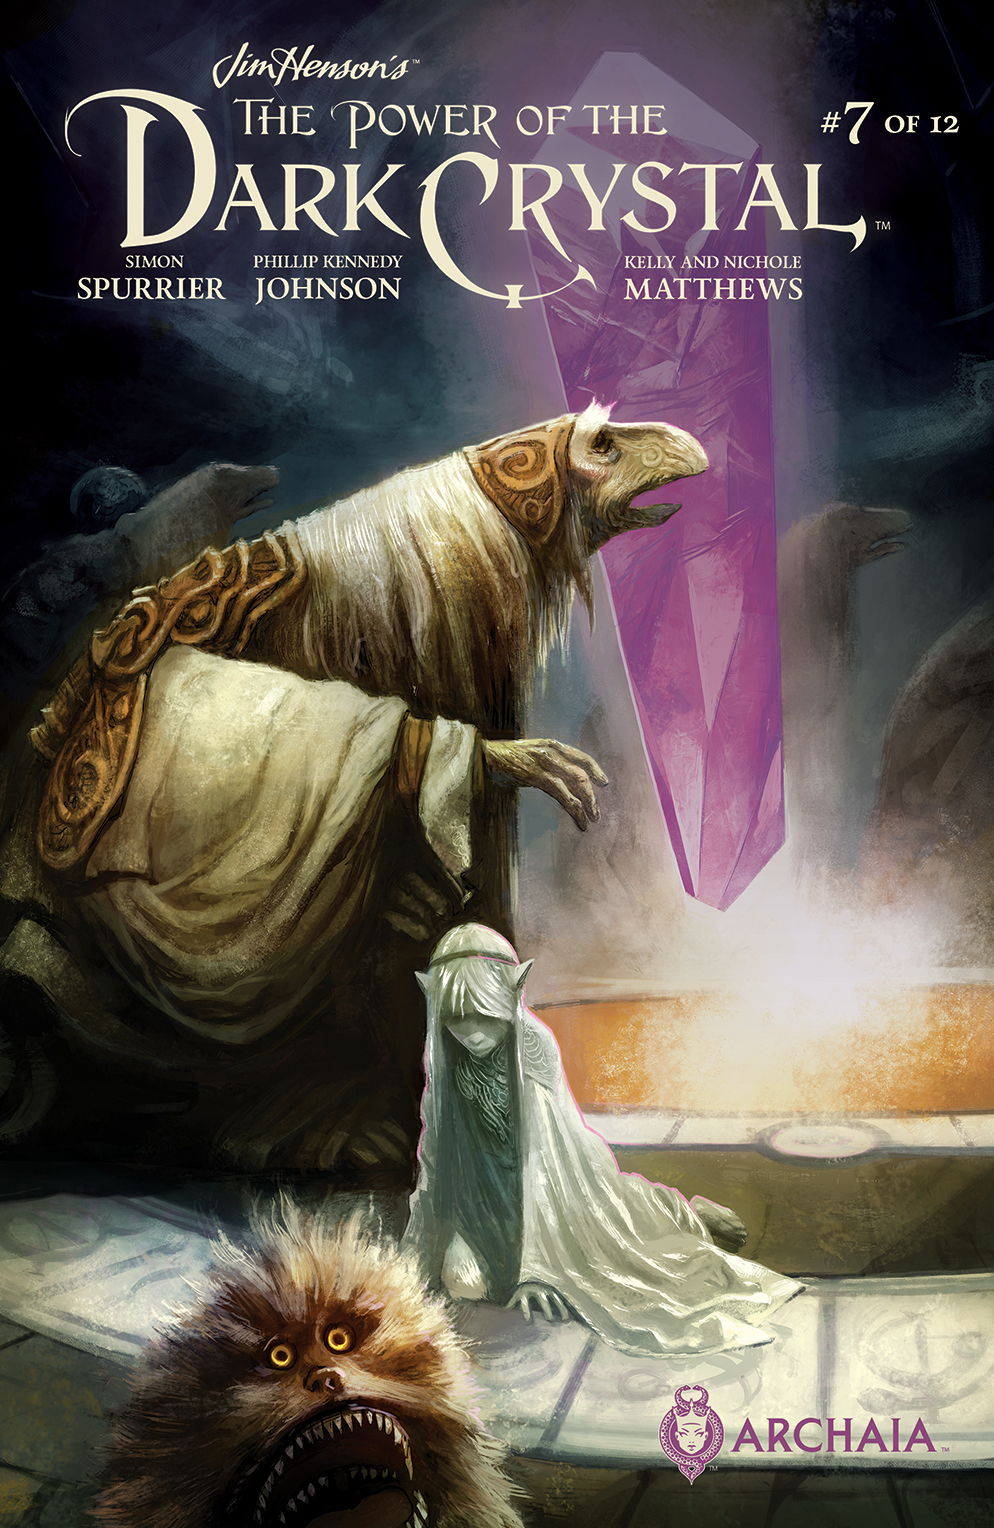 POWER OF THE DARK CRYSTAL #7 (OF 12)